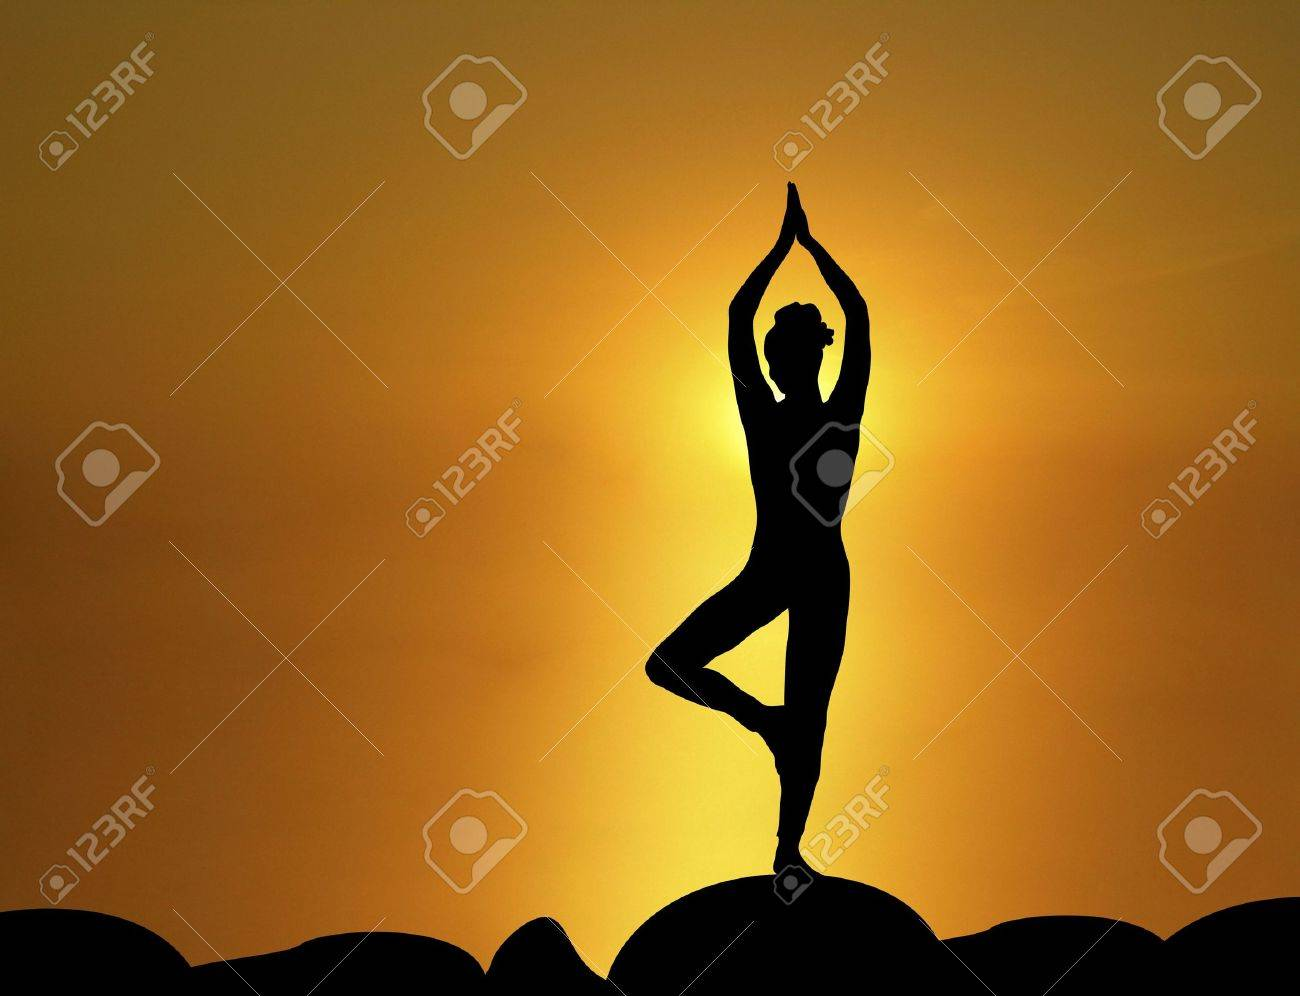 silhouette of woman in standing yoga pose with sunrise in the background Stock Photo - 2403101